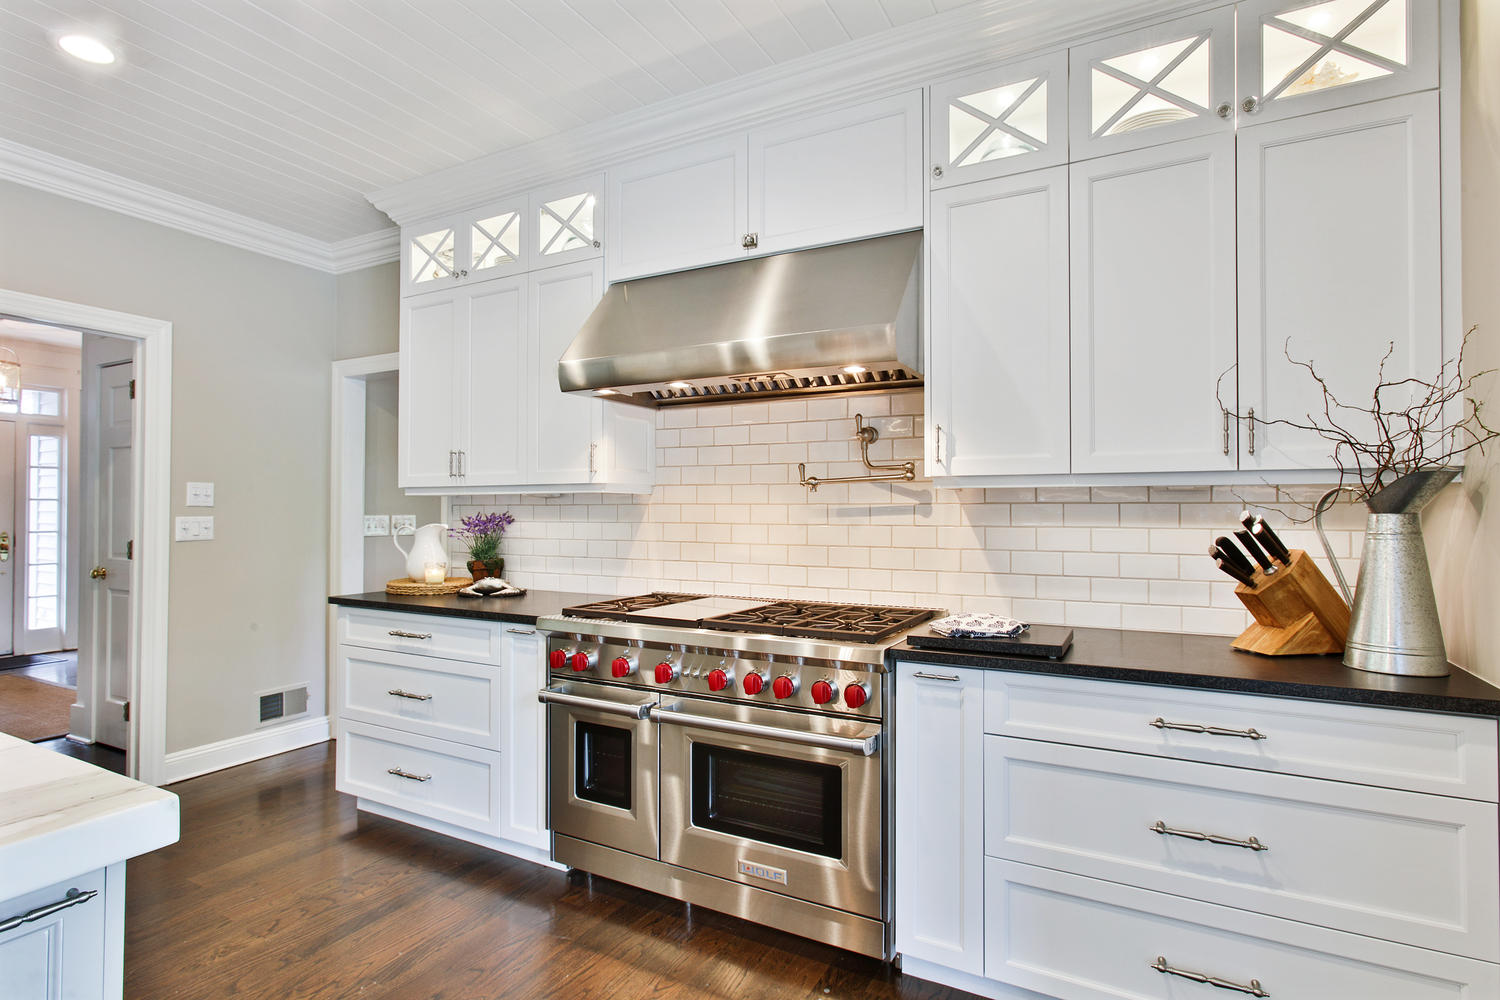 The White Kitchen Perfected Wall Township New Jersey by Design Line ...